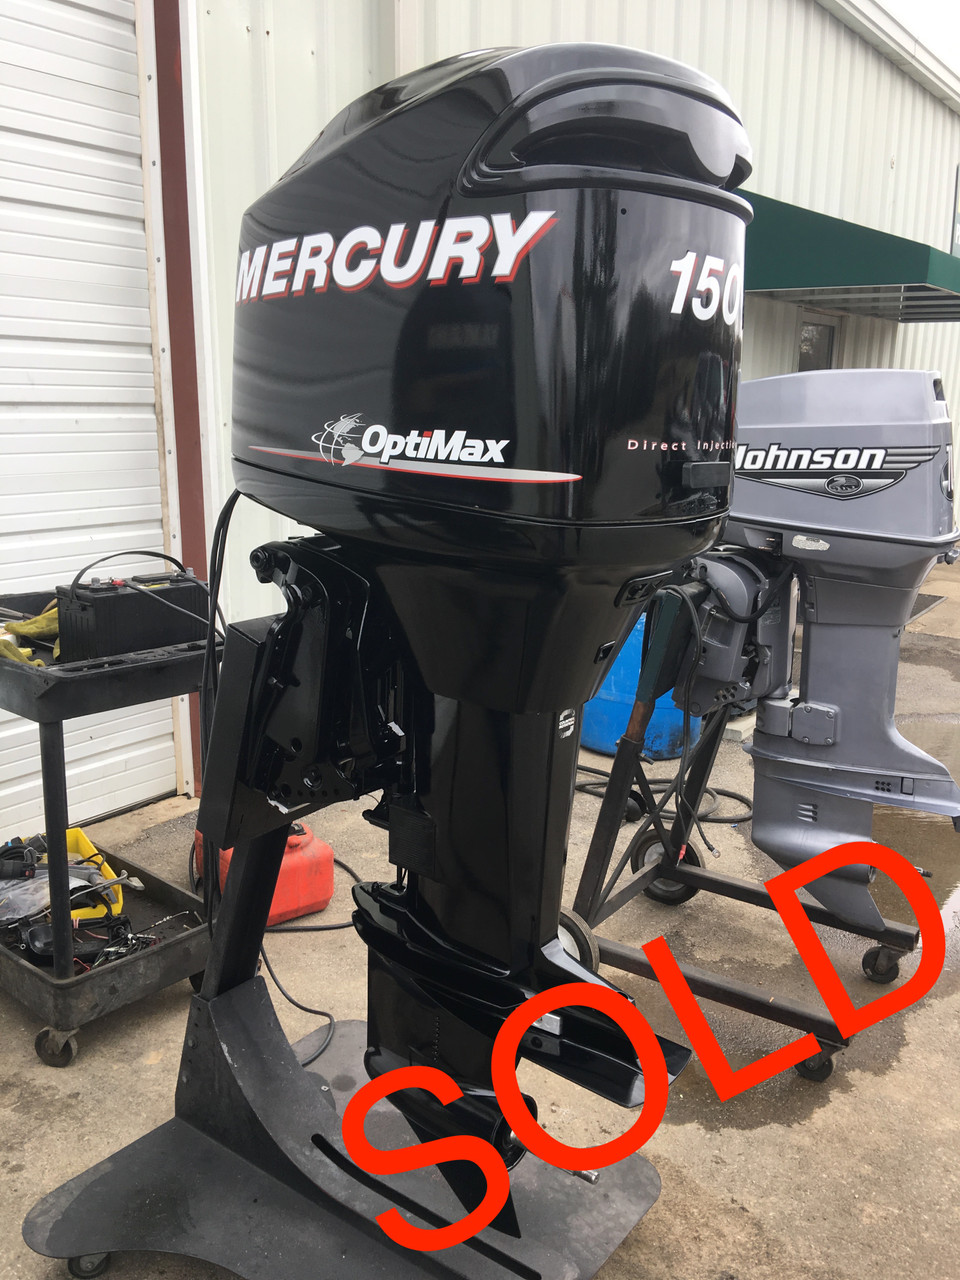 2006 Mercury 150 HP Optimax V6 DFI 2 Stroke 25